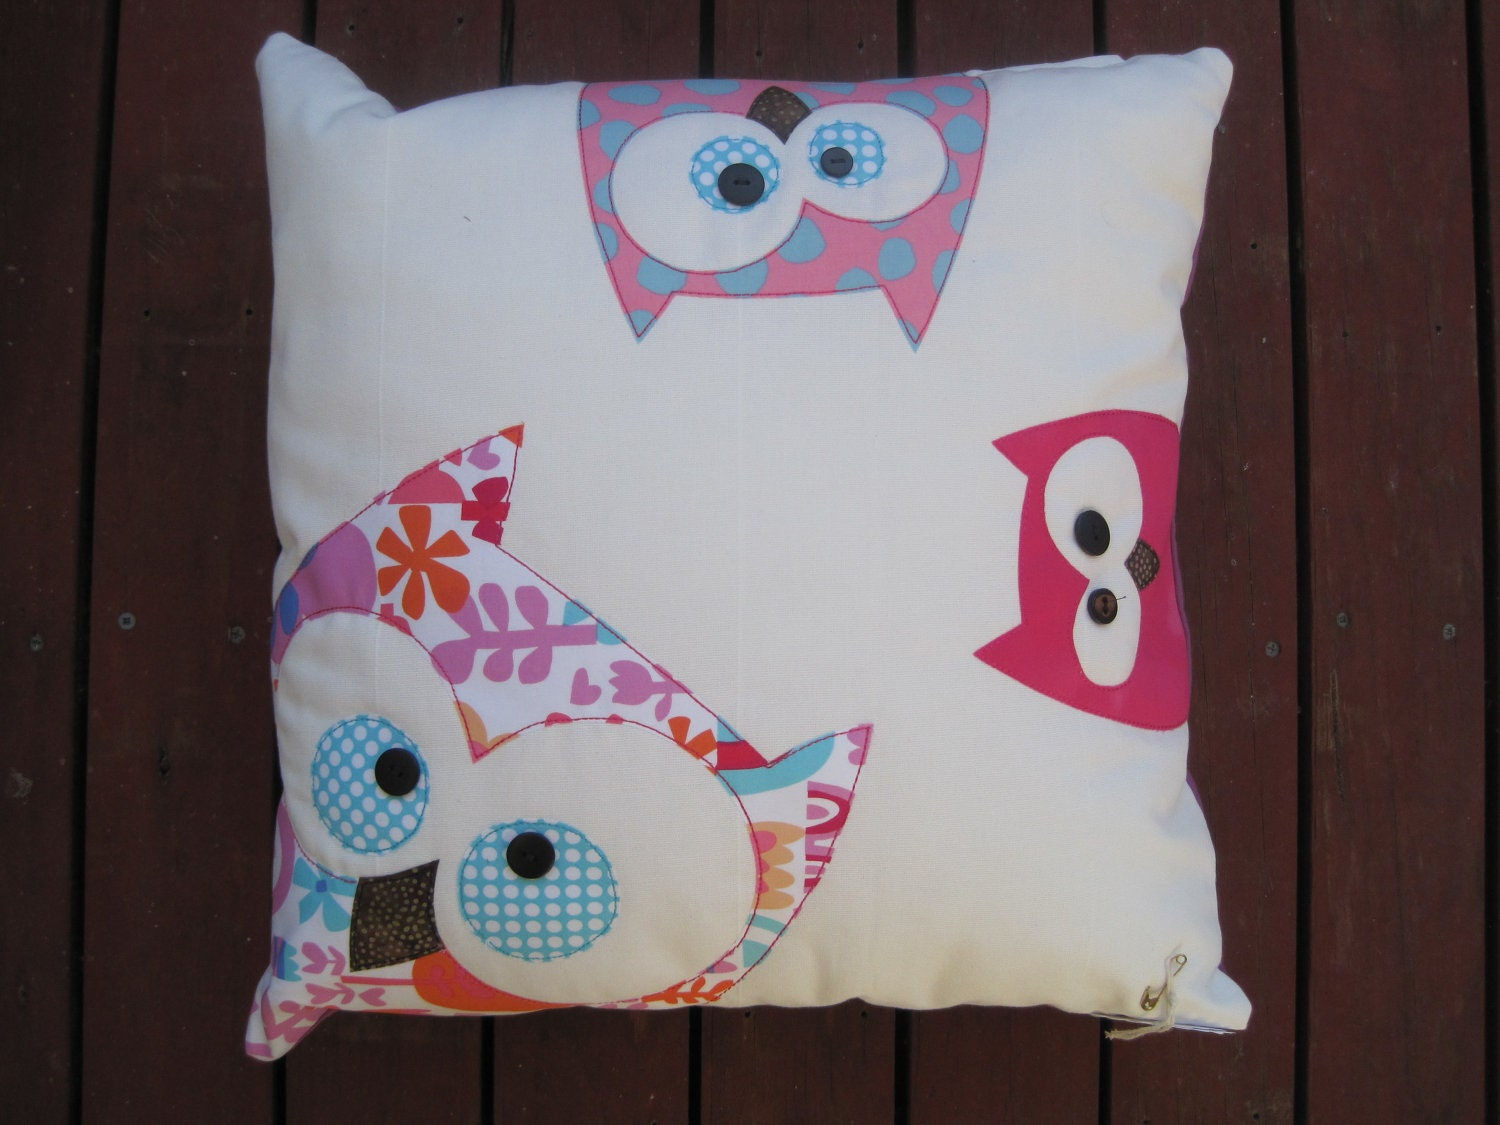 Family Of Owls Cushion in Pinks